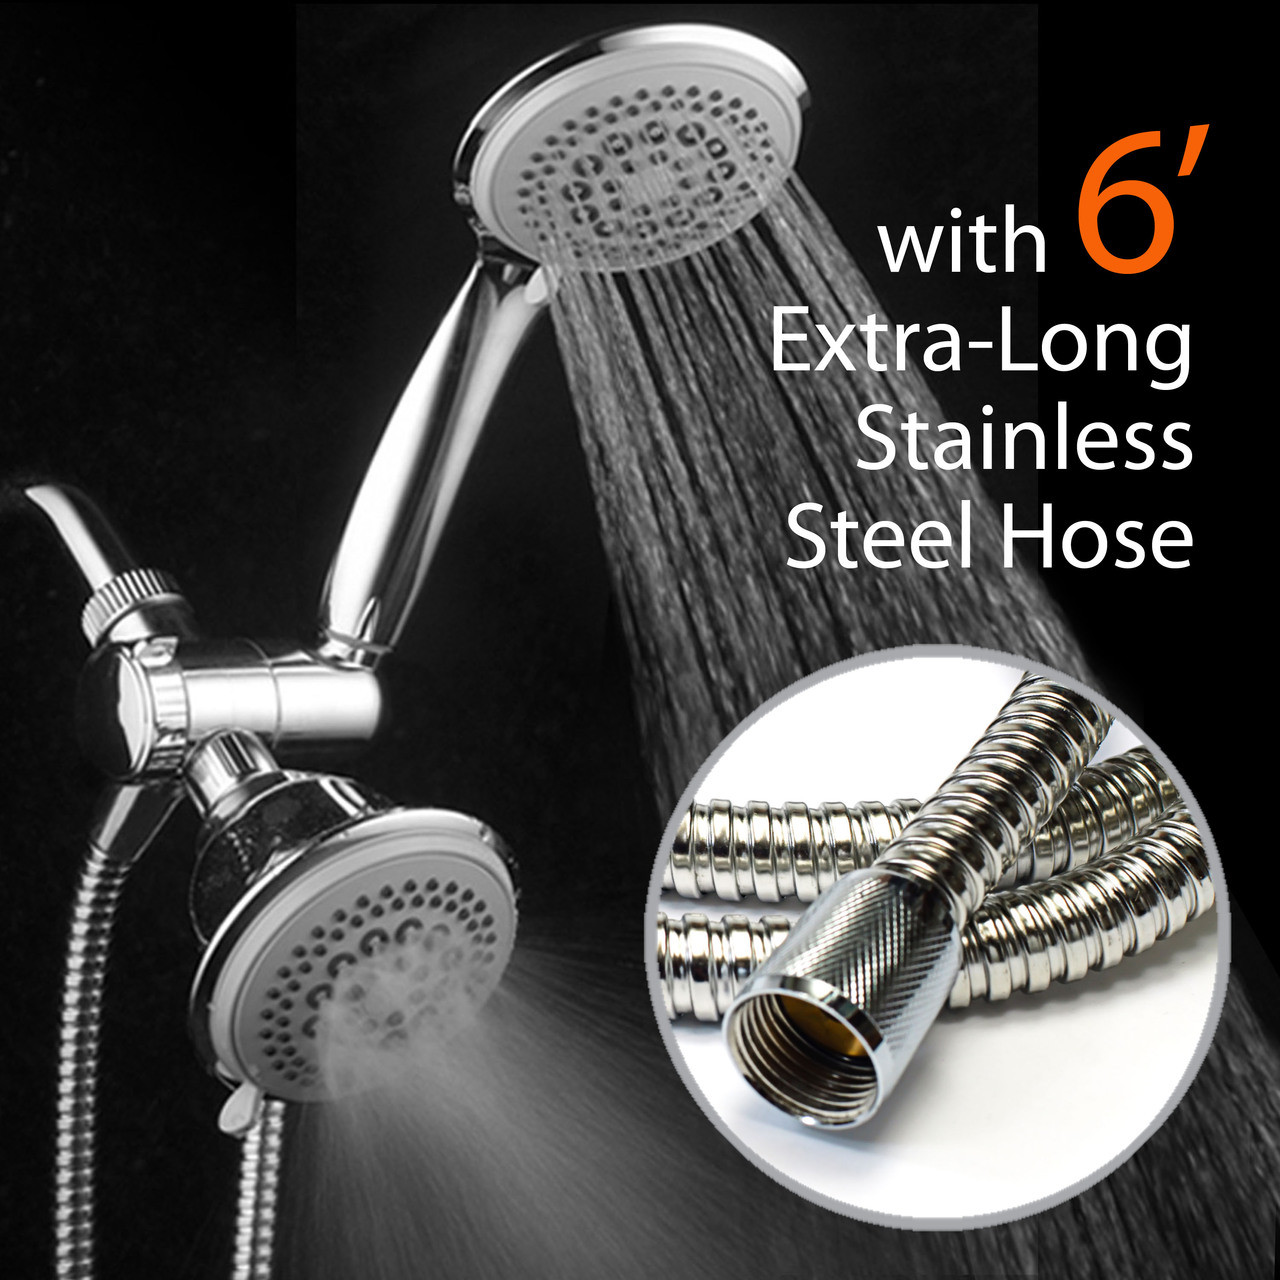 Dream Spa Luxury 36 Setting Large Showerhead And Hand Shower Dual 3 Way Combo By Top Brand Manufacturer Fixed And Handheld Shower Heads